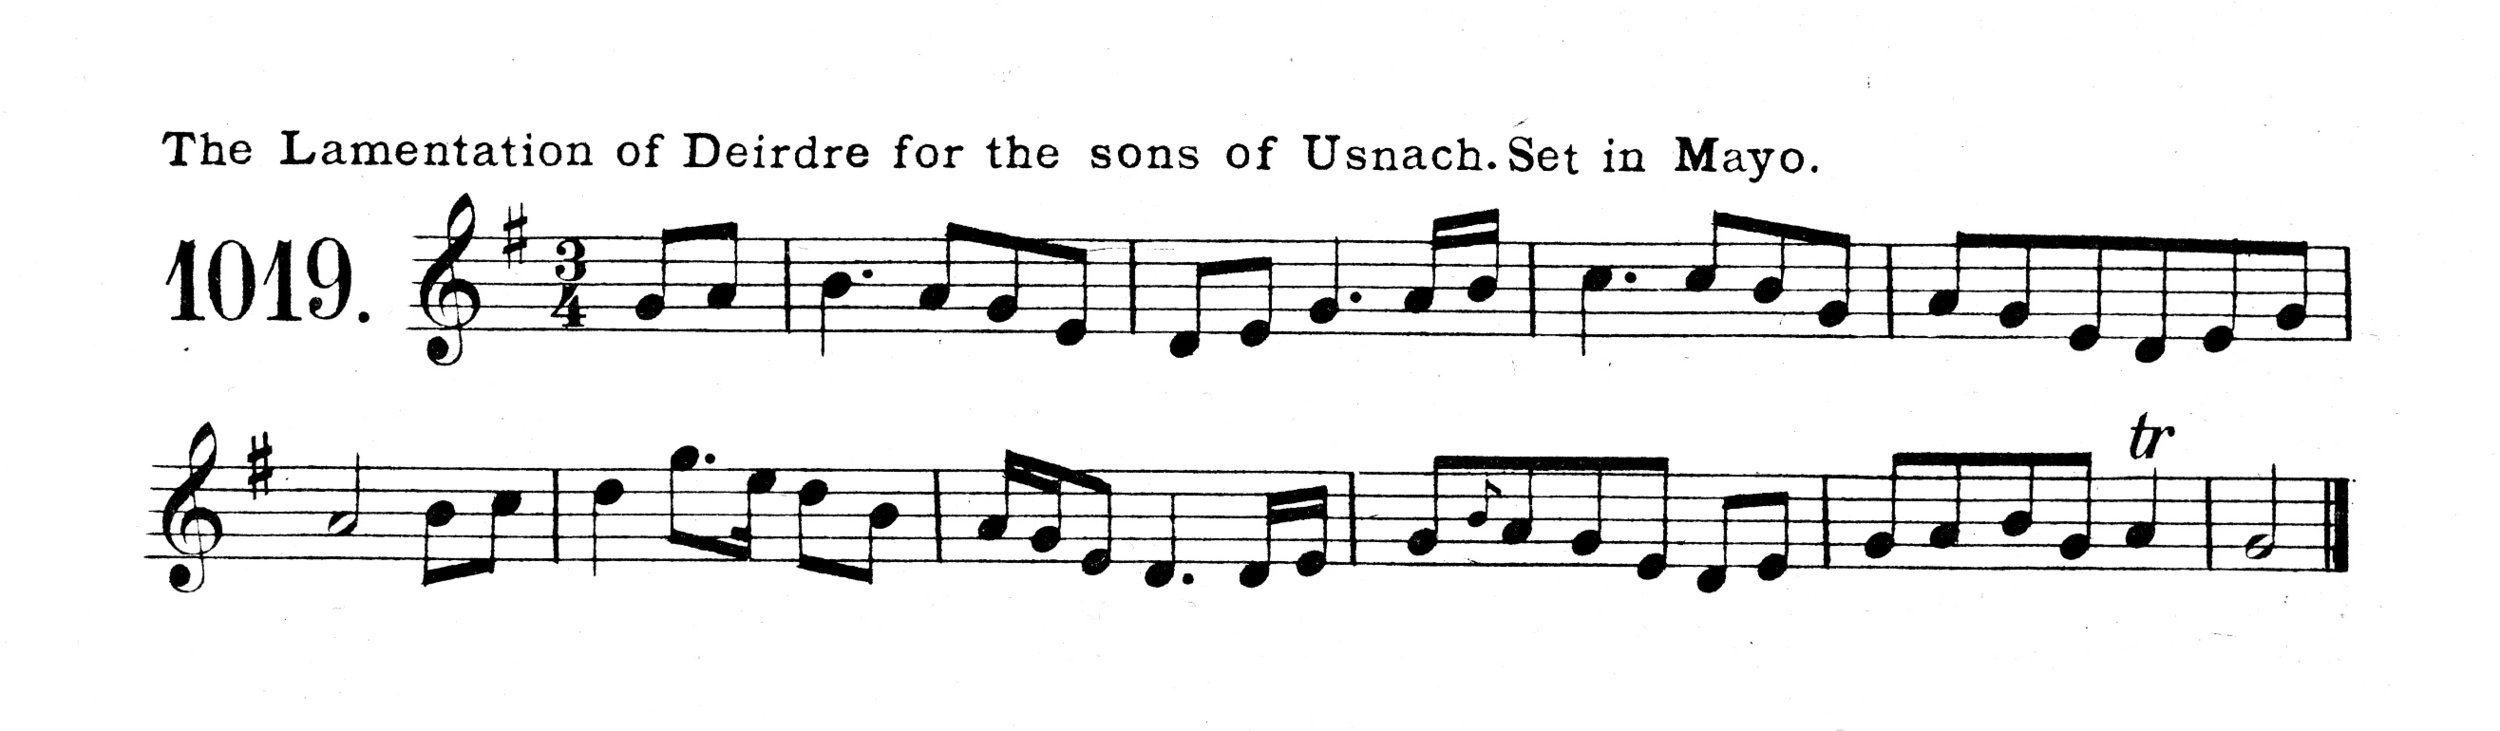 Fig. 10.   The Complete Collection of Irish Music  (London: Boosey & Co., 1902).